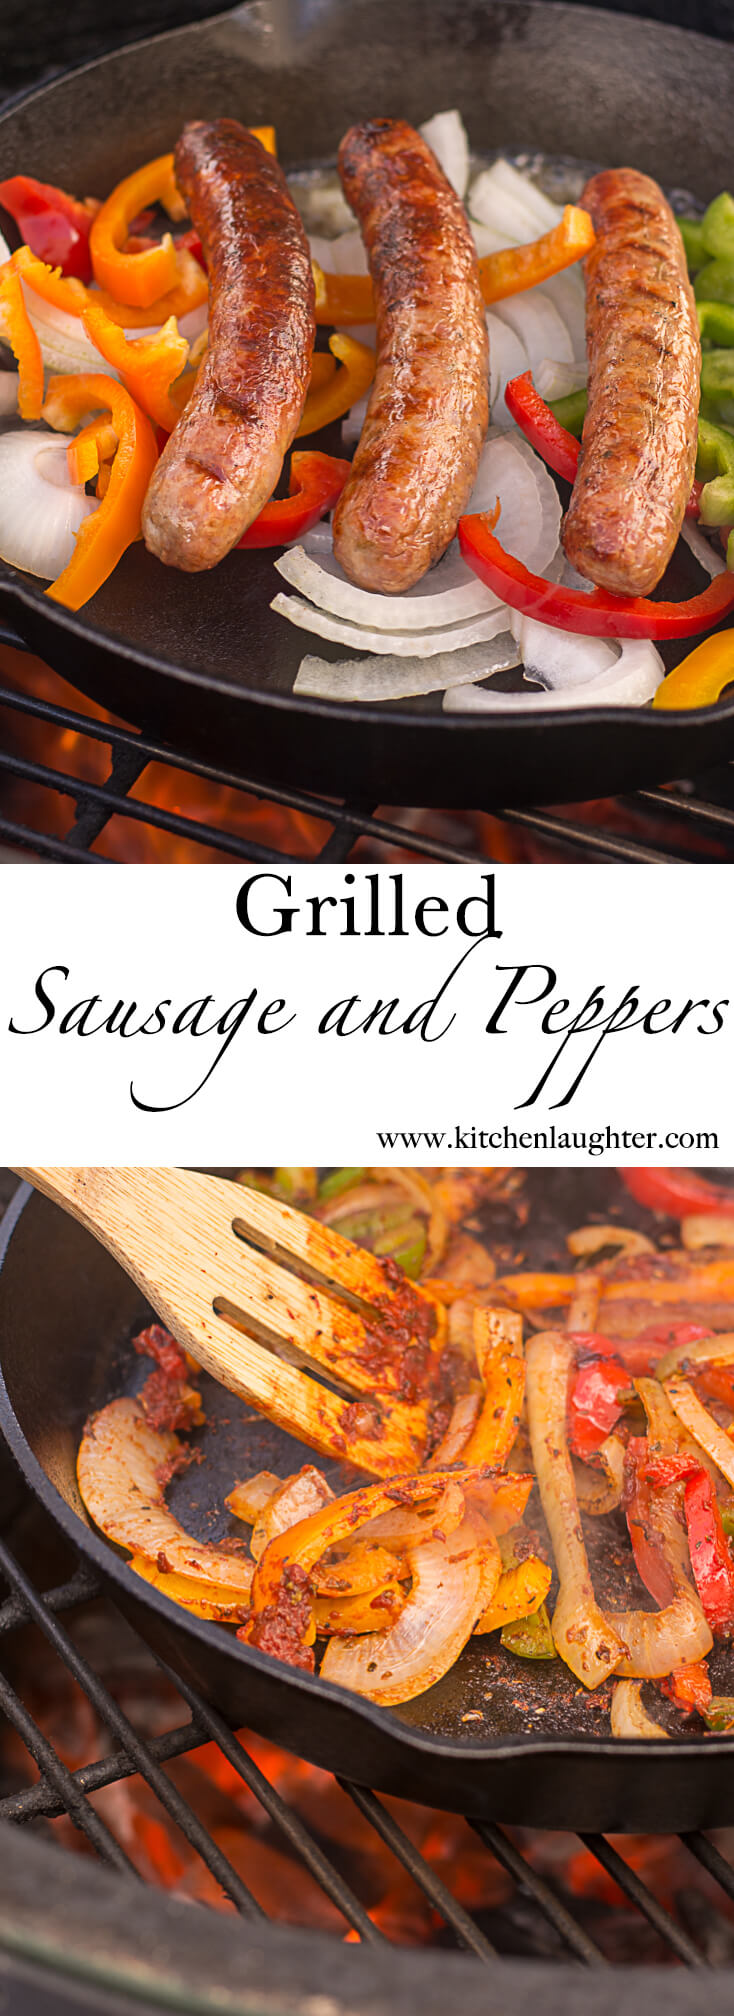 Grilled Sausage and Peppers #Grilled #SausageandPeppers #BGE #BigGreenEgg #TailGate #GrilledSausage #CastIron